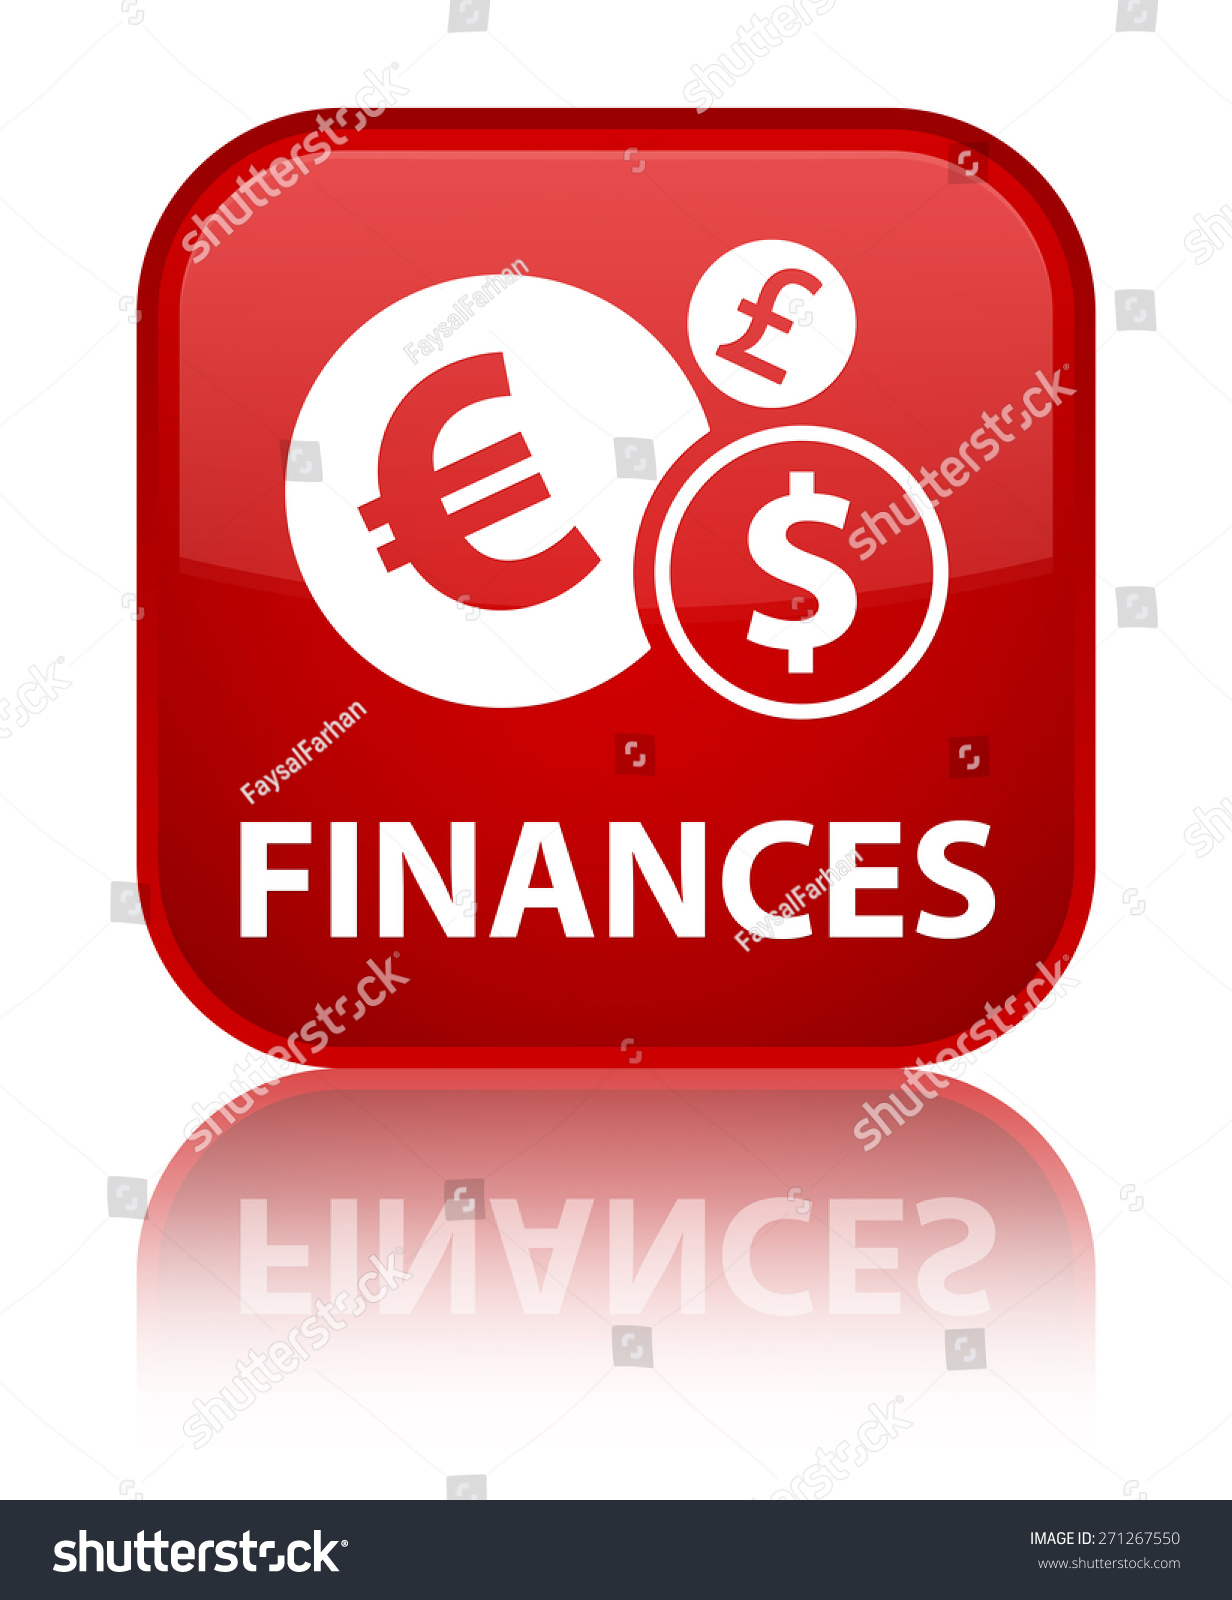 stock-photo-finances-euro-sign-red-square-button-271267550.jpg